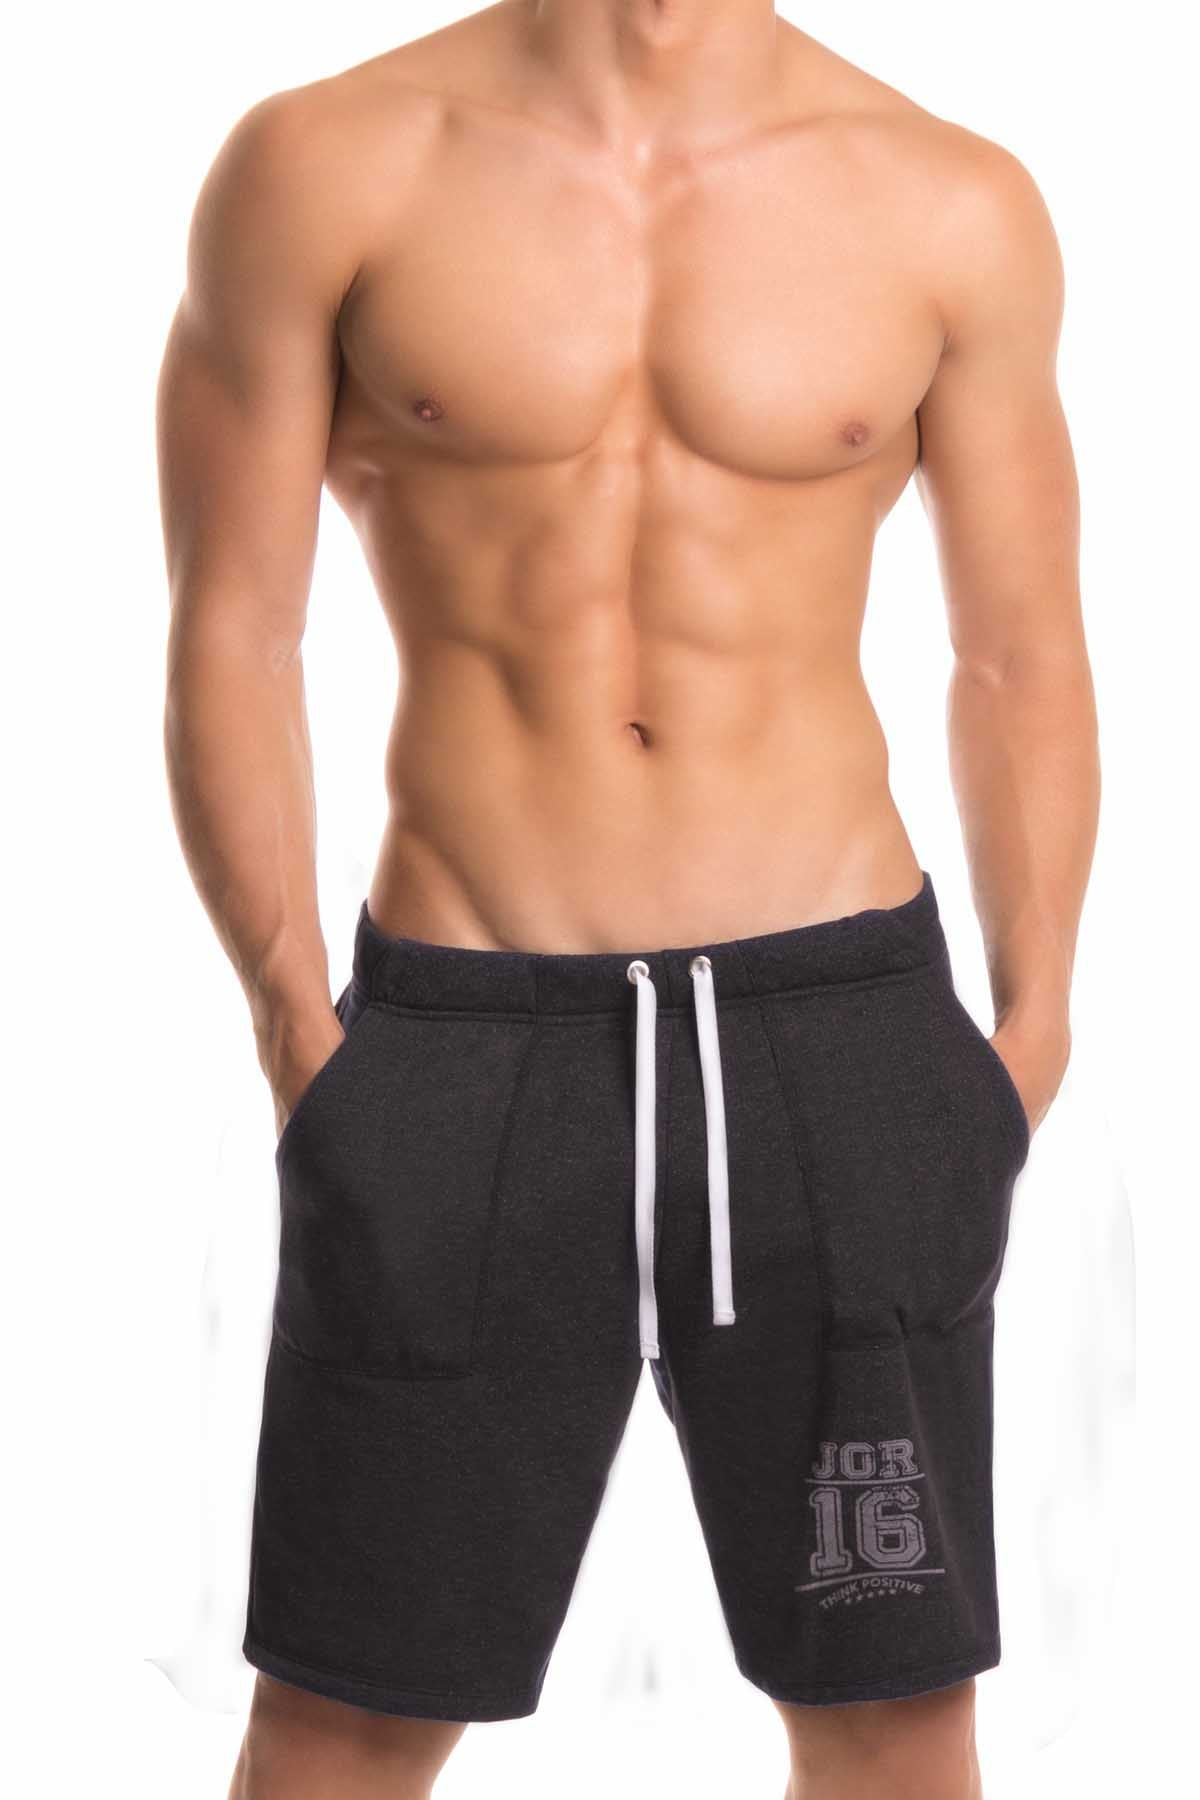 Jor Black Long Fighter Short